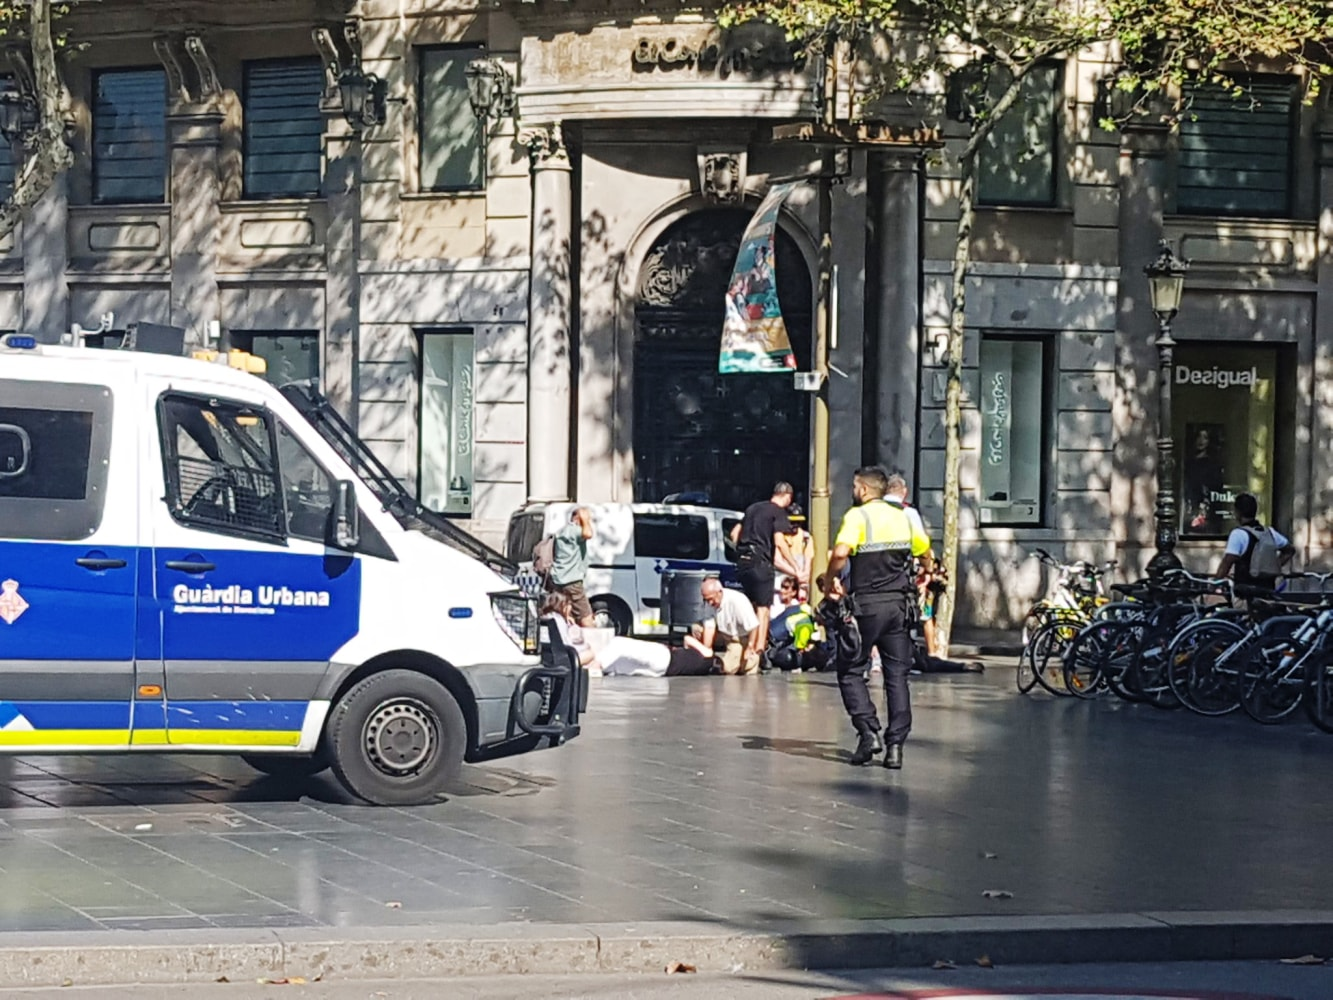 Police respond at an incident in Barcelona. Jordi Sans